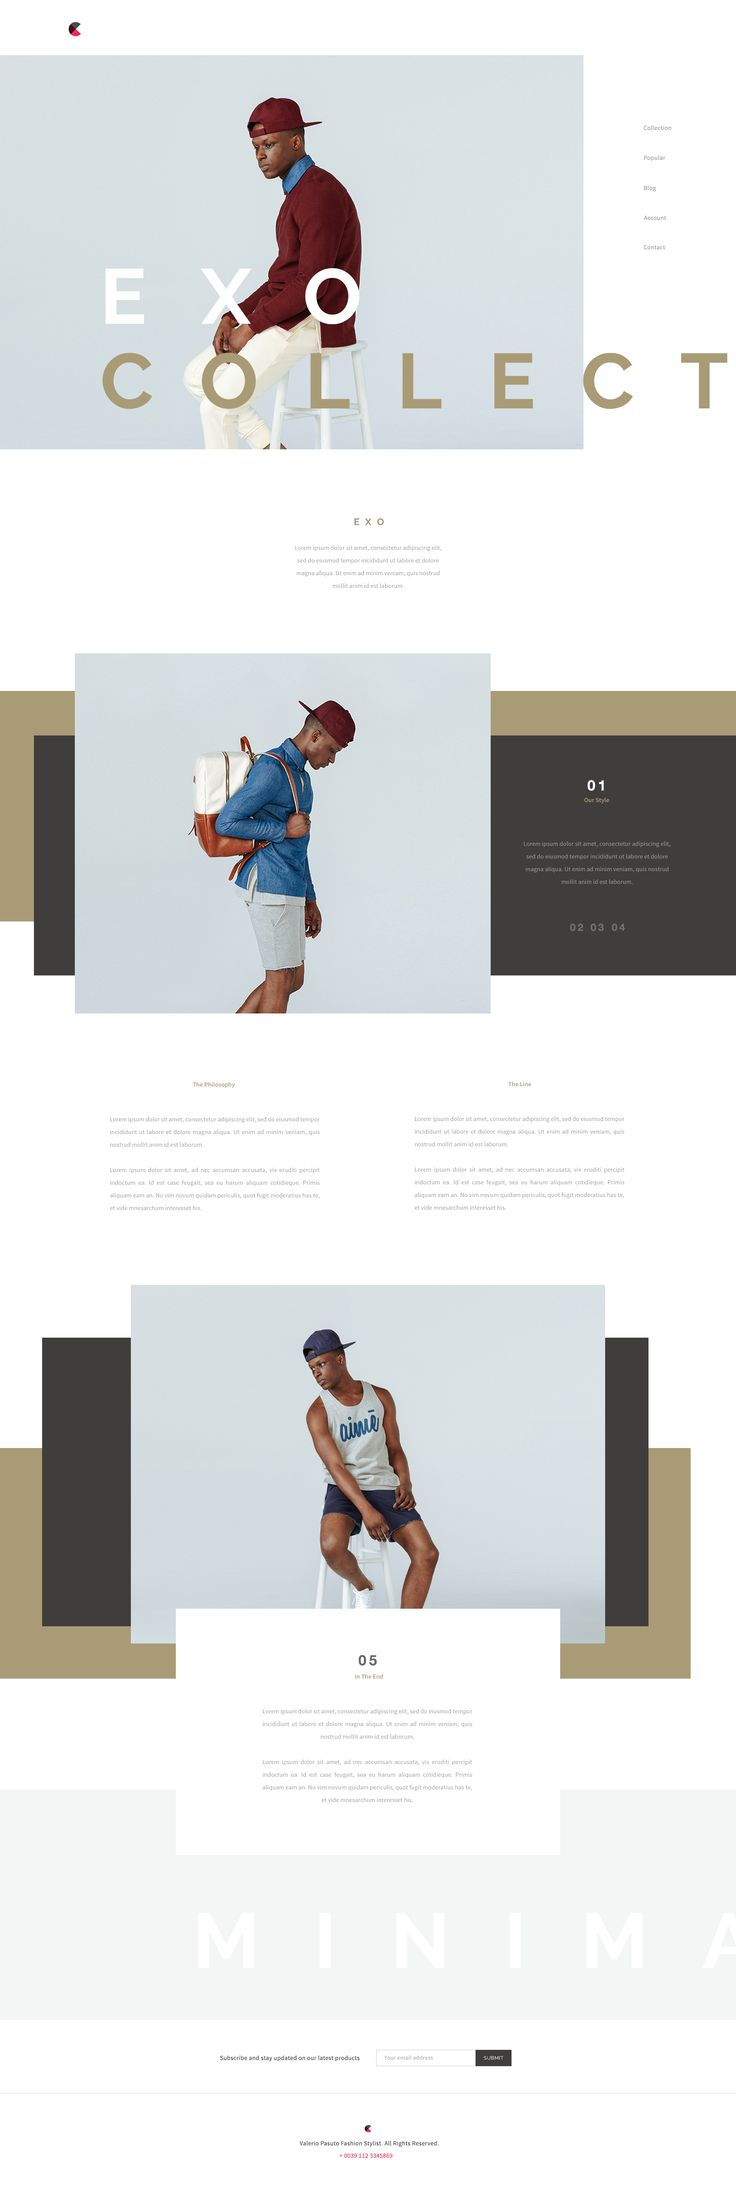 Fashion Website by Matteo Pasuto #web #webdesign #design #layout #grid